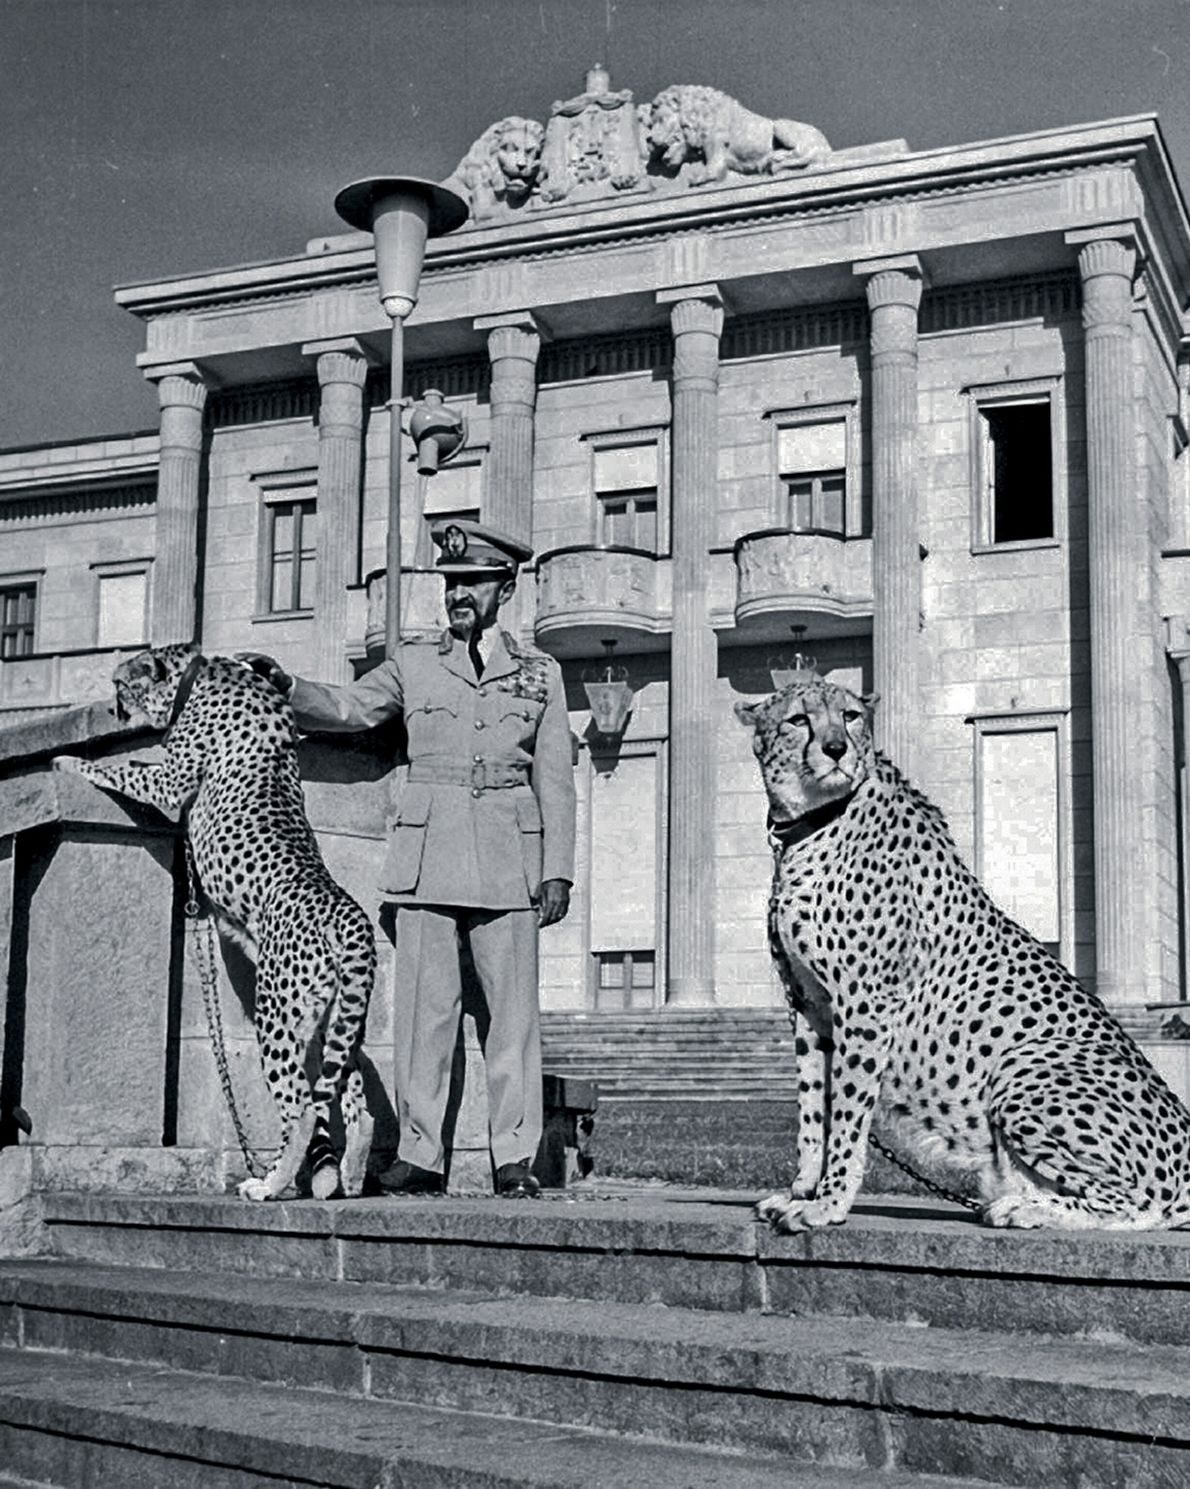 Ethiopia's last emperor, Haile Selassie I, stands with his pet cheetahs at the Jubilee Palace in ...